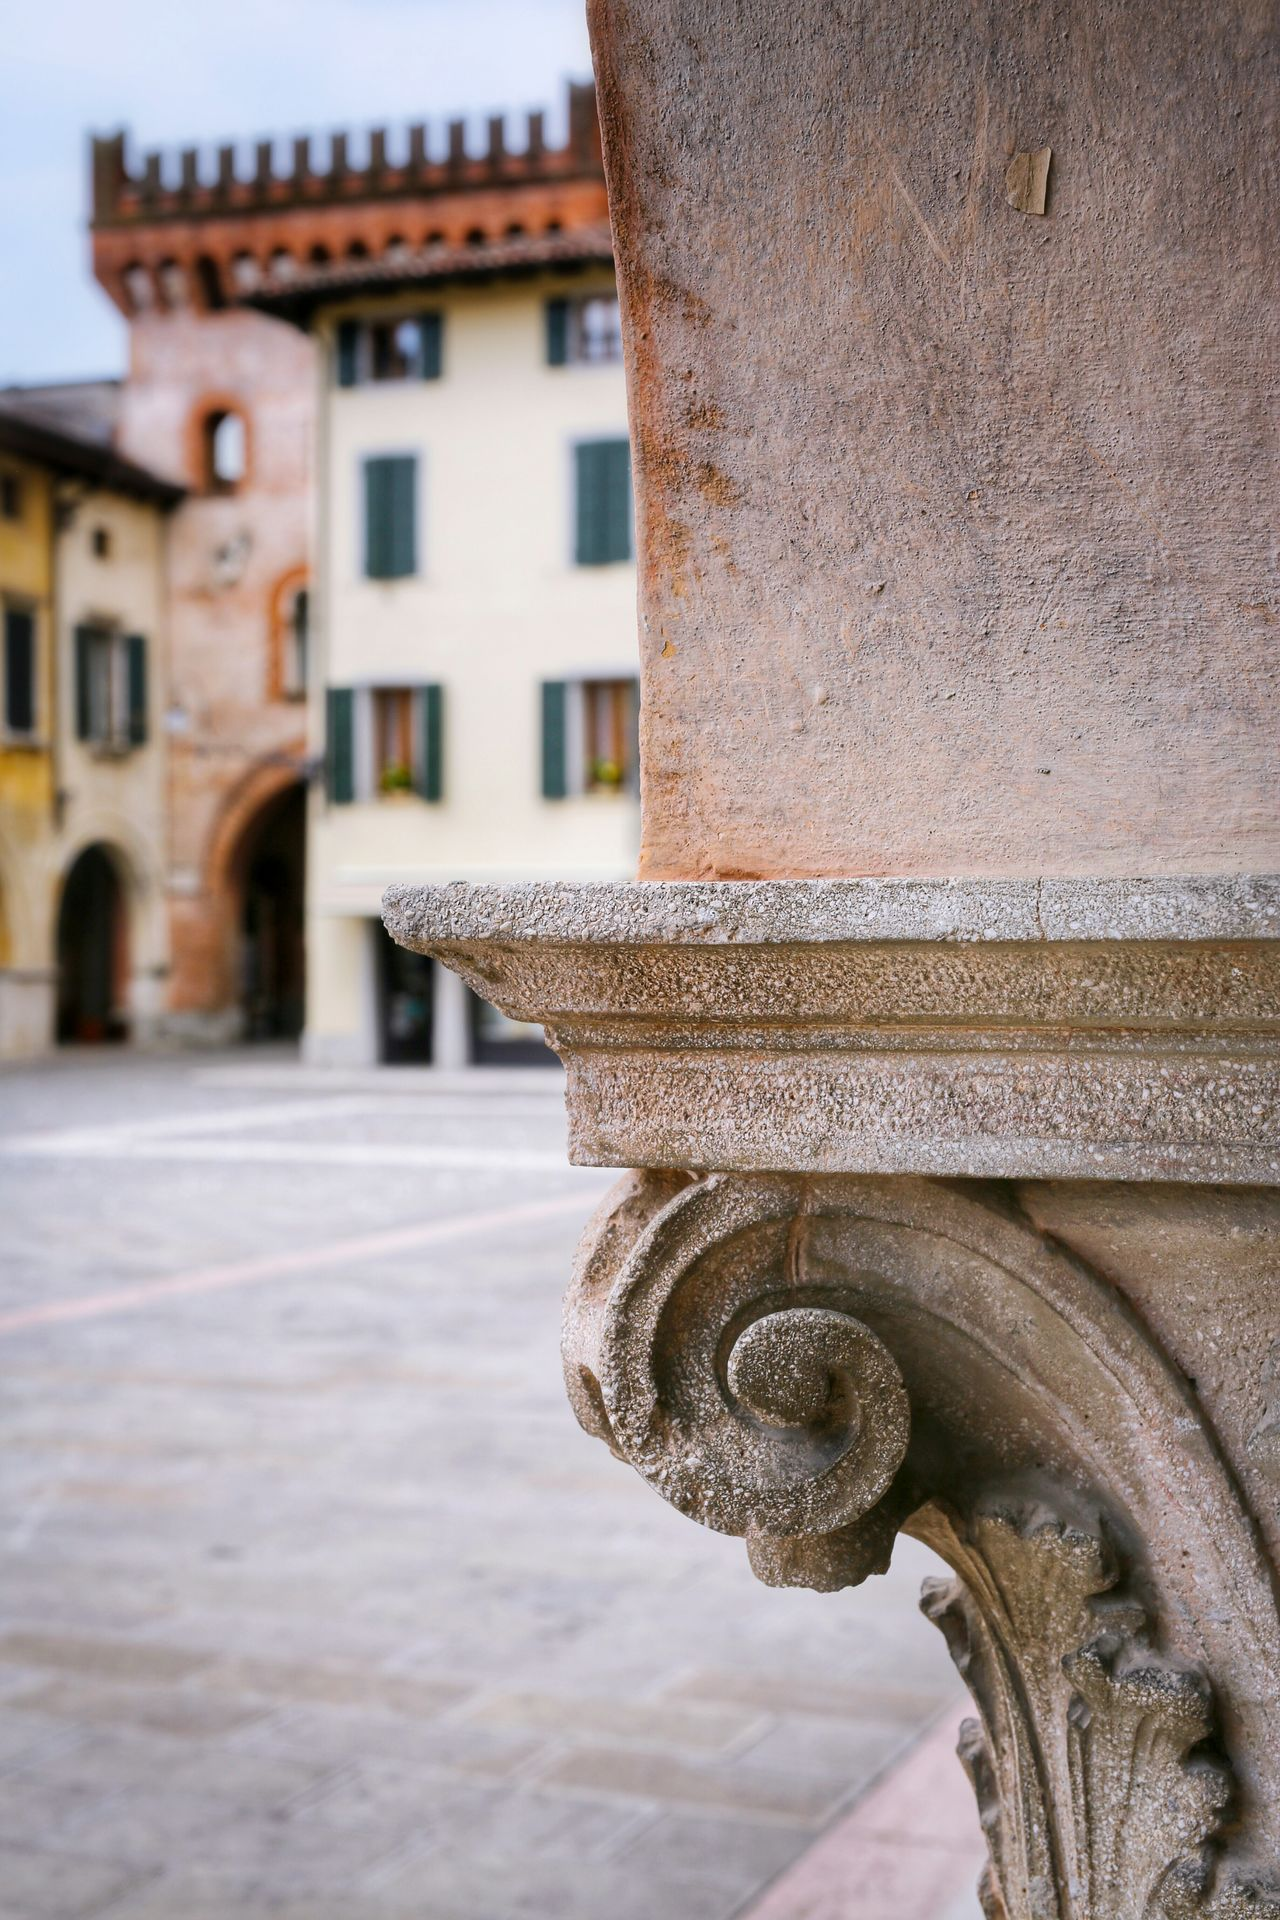 San Vito Al Tagliamento Pordenone Friuli Venezia Giulia Italy Travel Photography Travel Voyage Traveling Mobile Photography Fine Art Canon Eos 5d Mark Iii Architecture Details Column Capitals Blurred Background Historical Buildings Mobile Editing